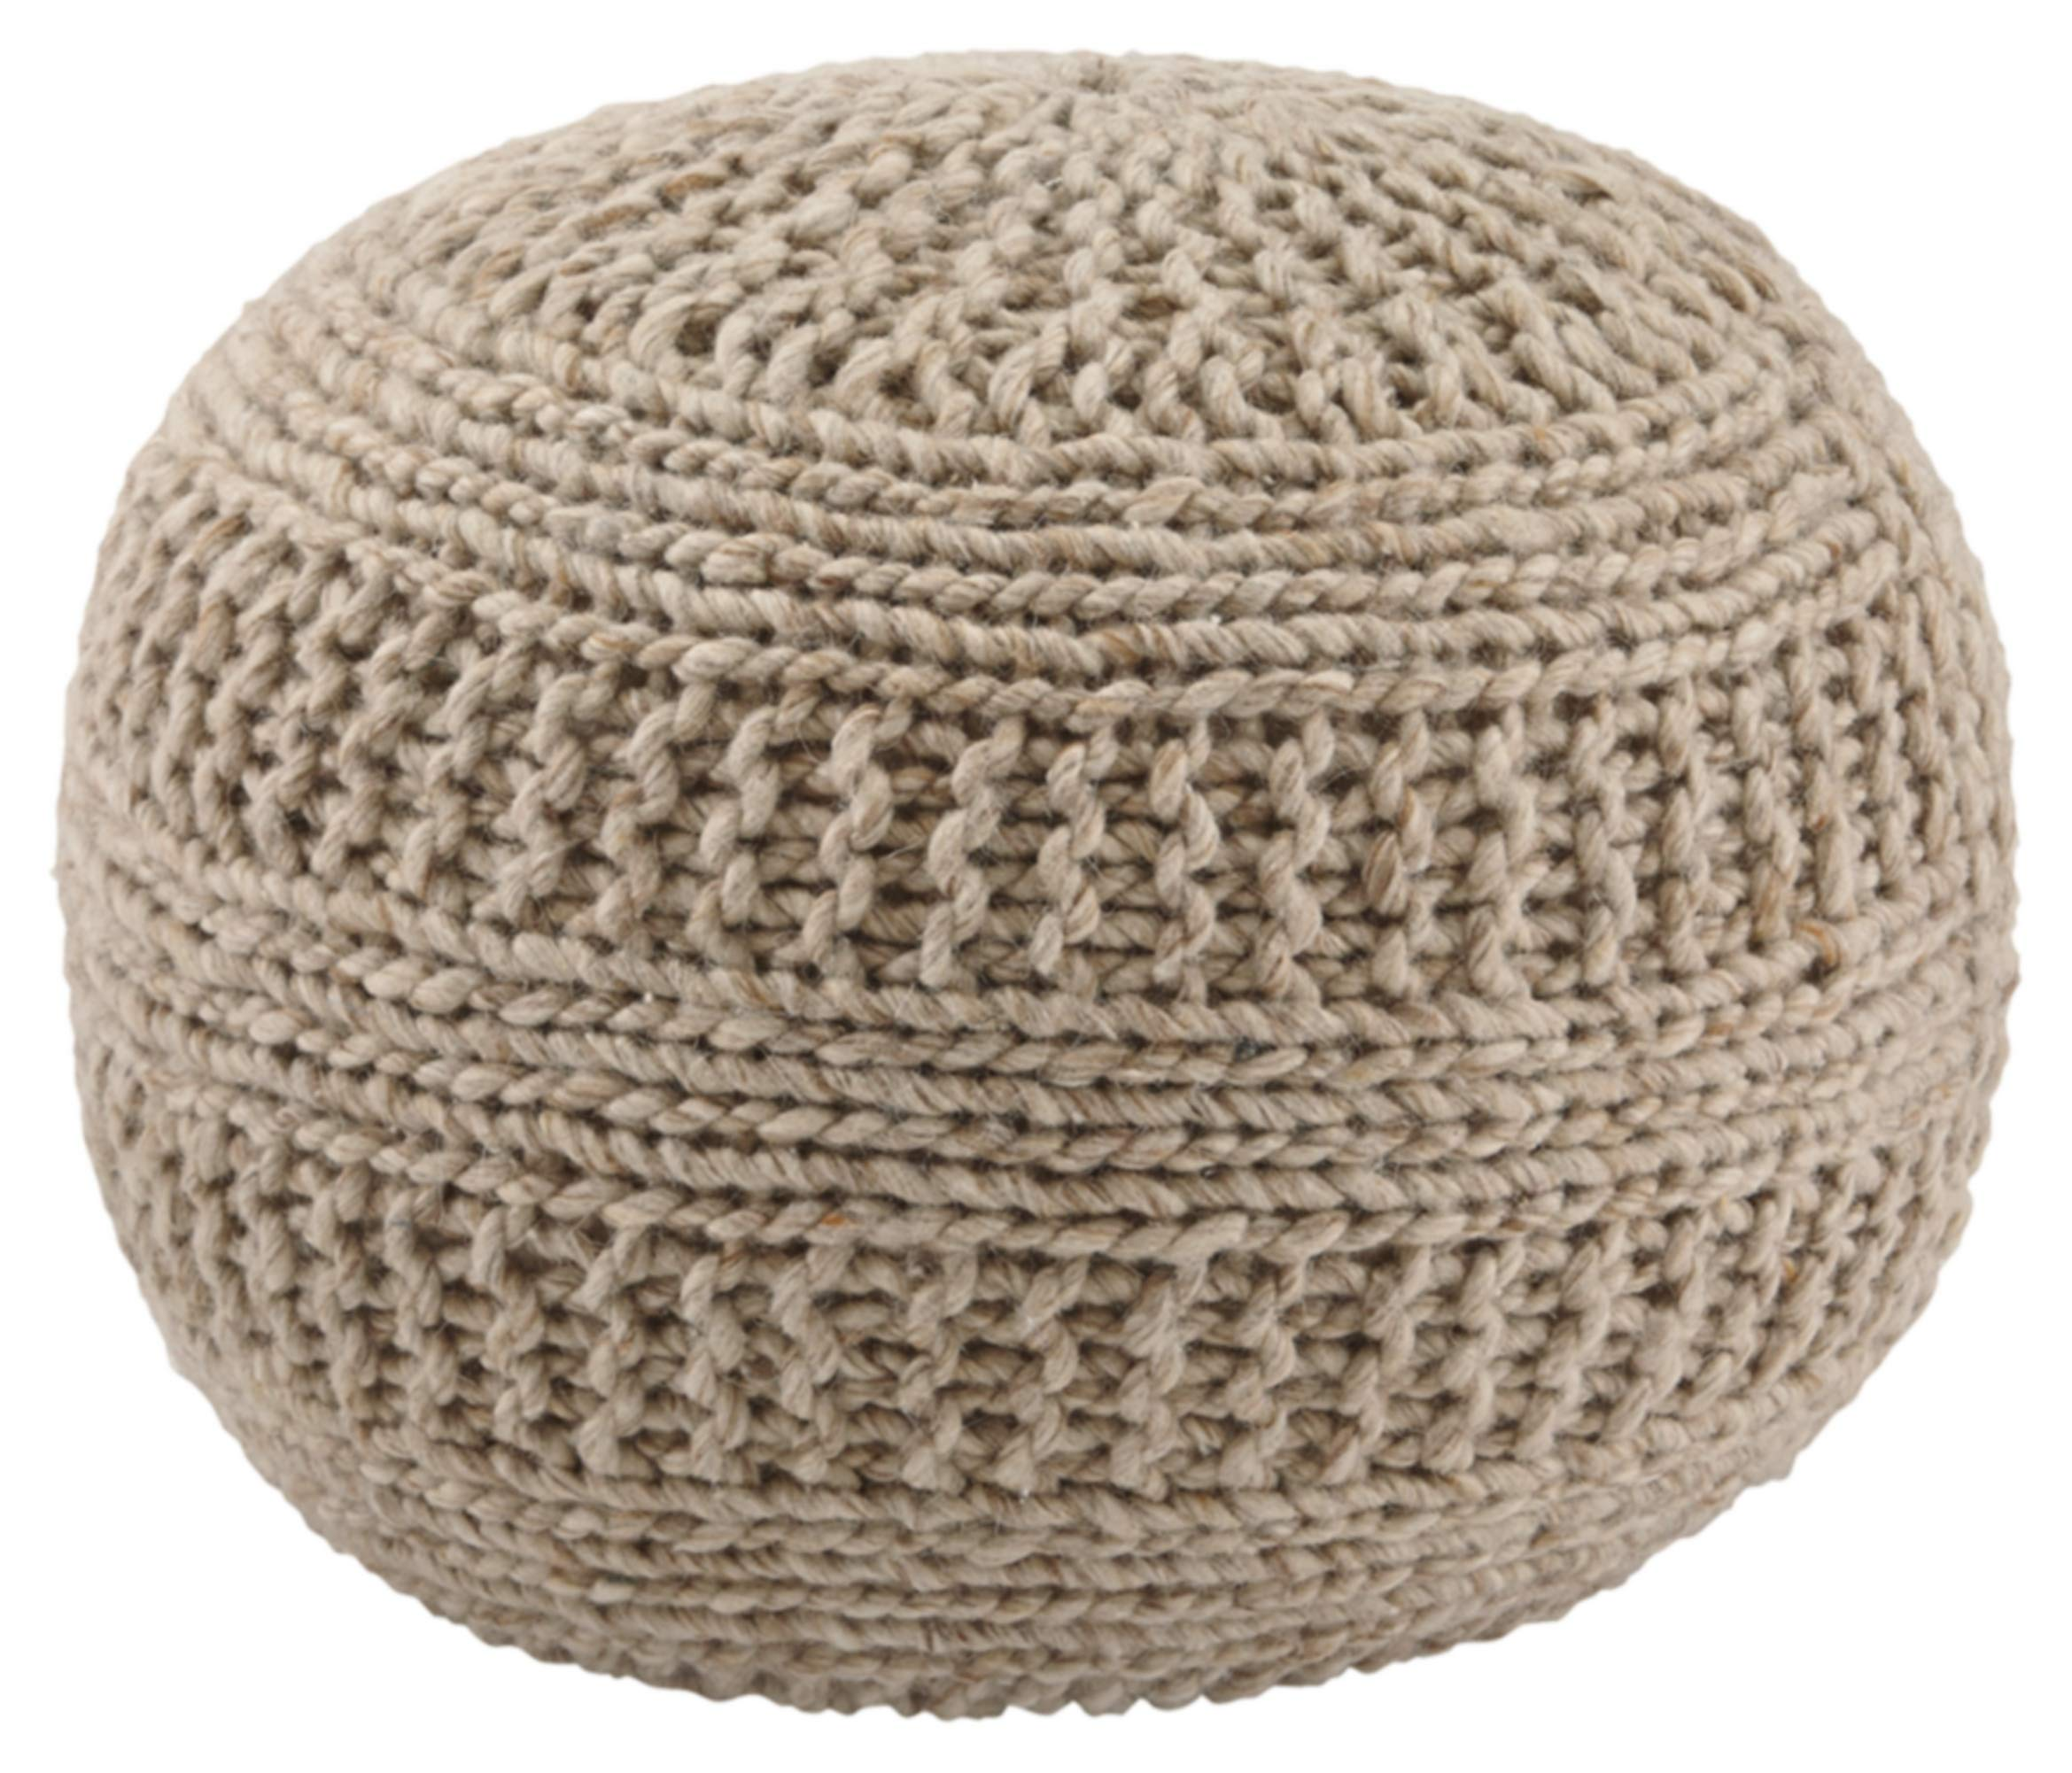 Ashley Furniture Signature Design - Benedict Pouf - Comfortable Ottoman & Footrest - Handmade Rib Knit - Natural by Signature Design by Ashley